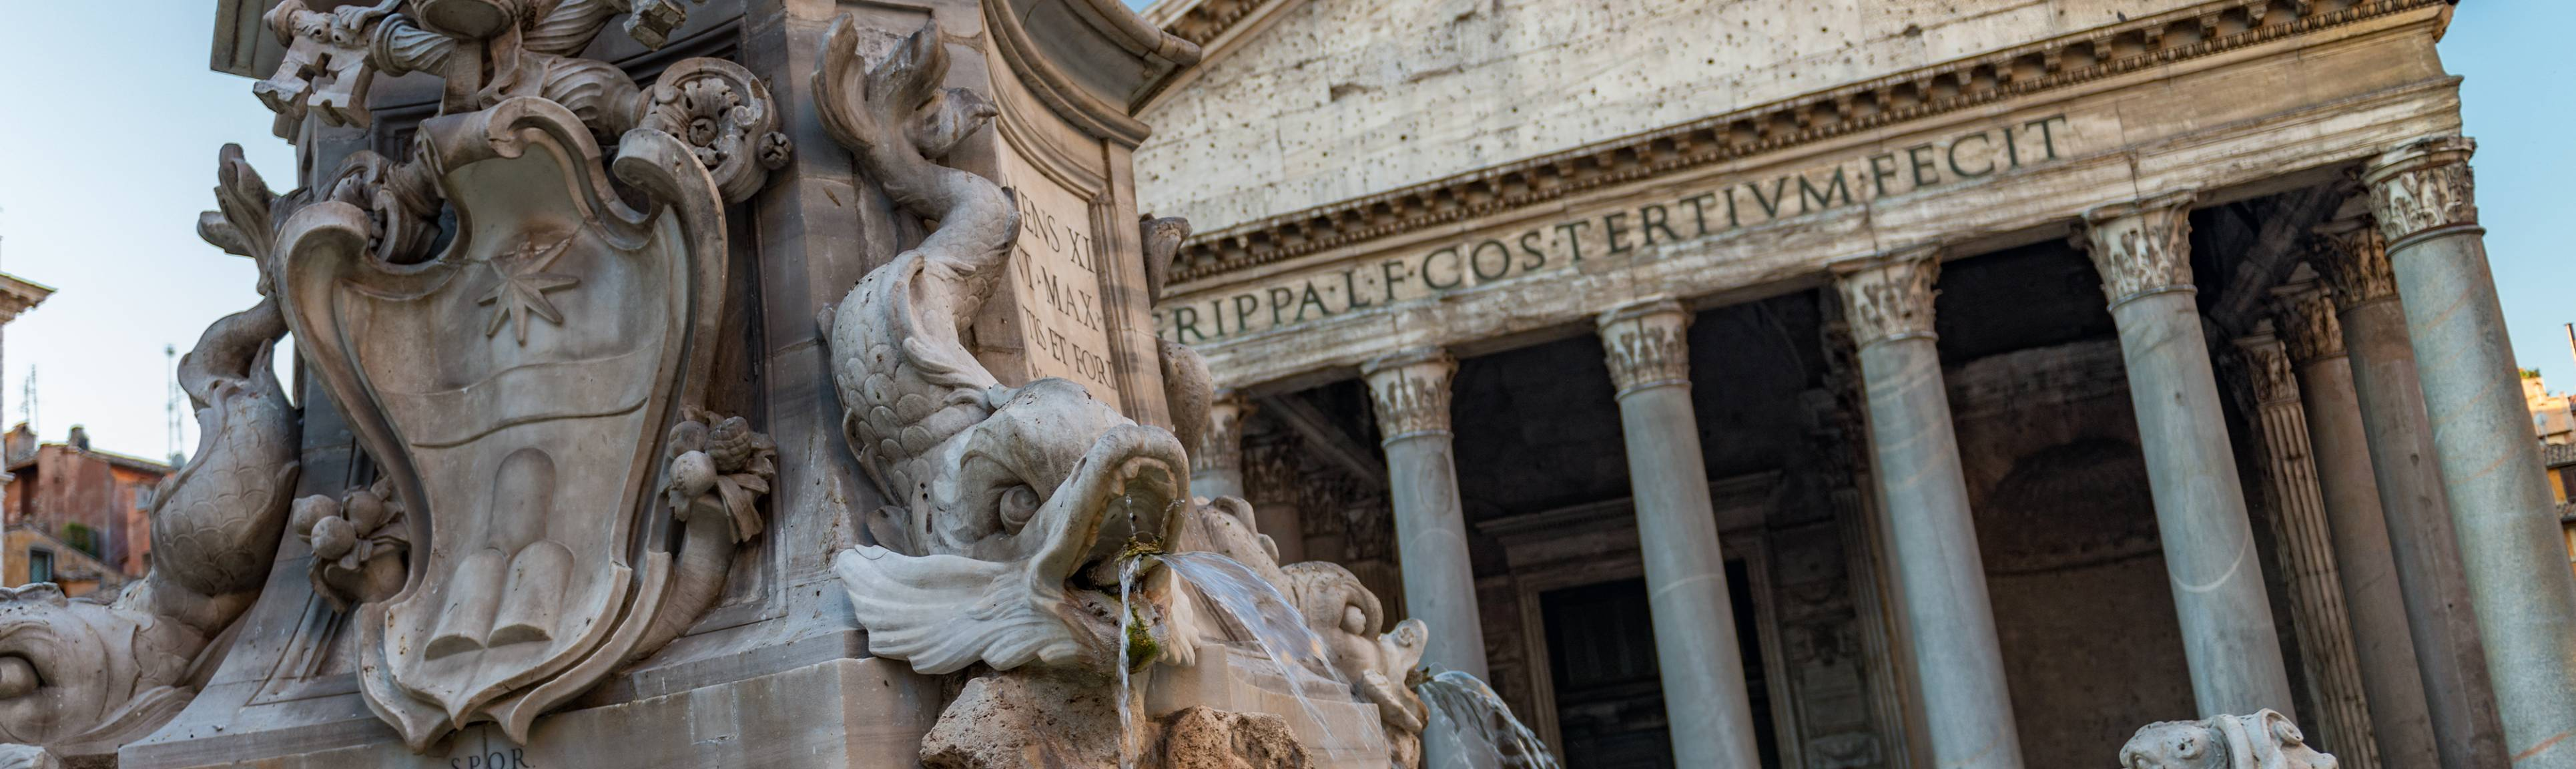 Detail of the front facade of the Pantheon in Rome